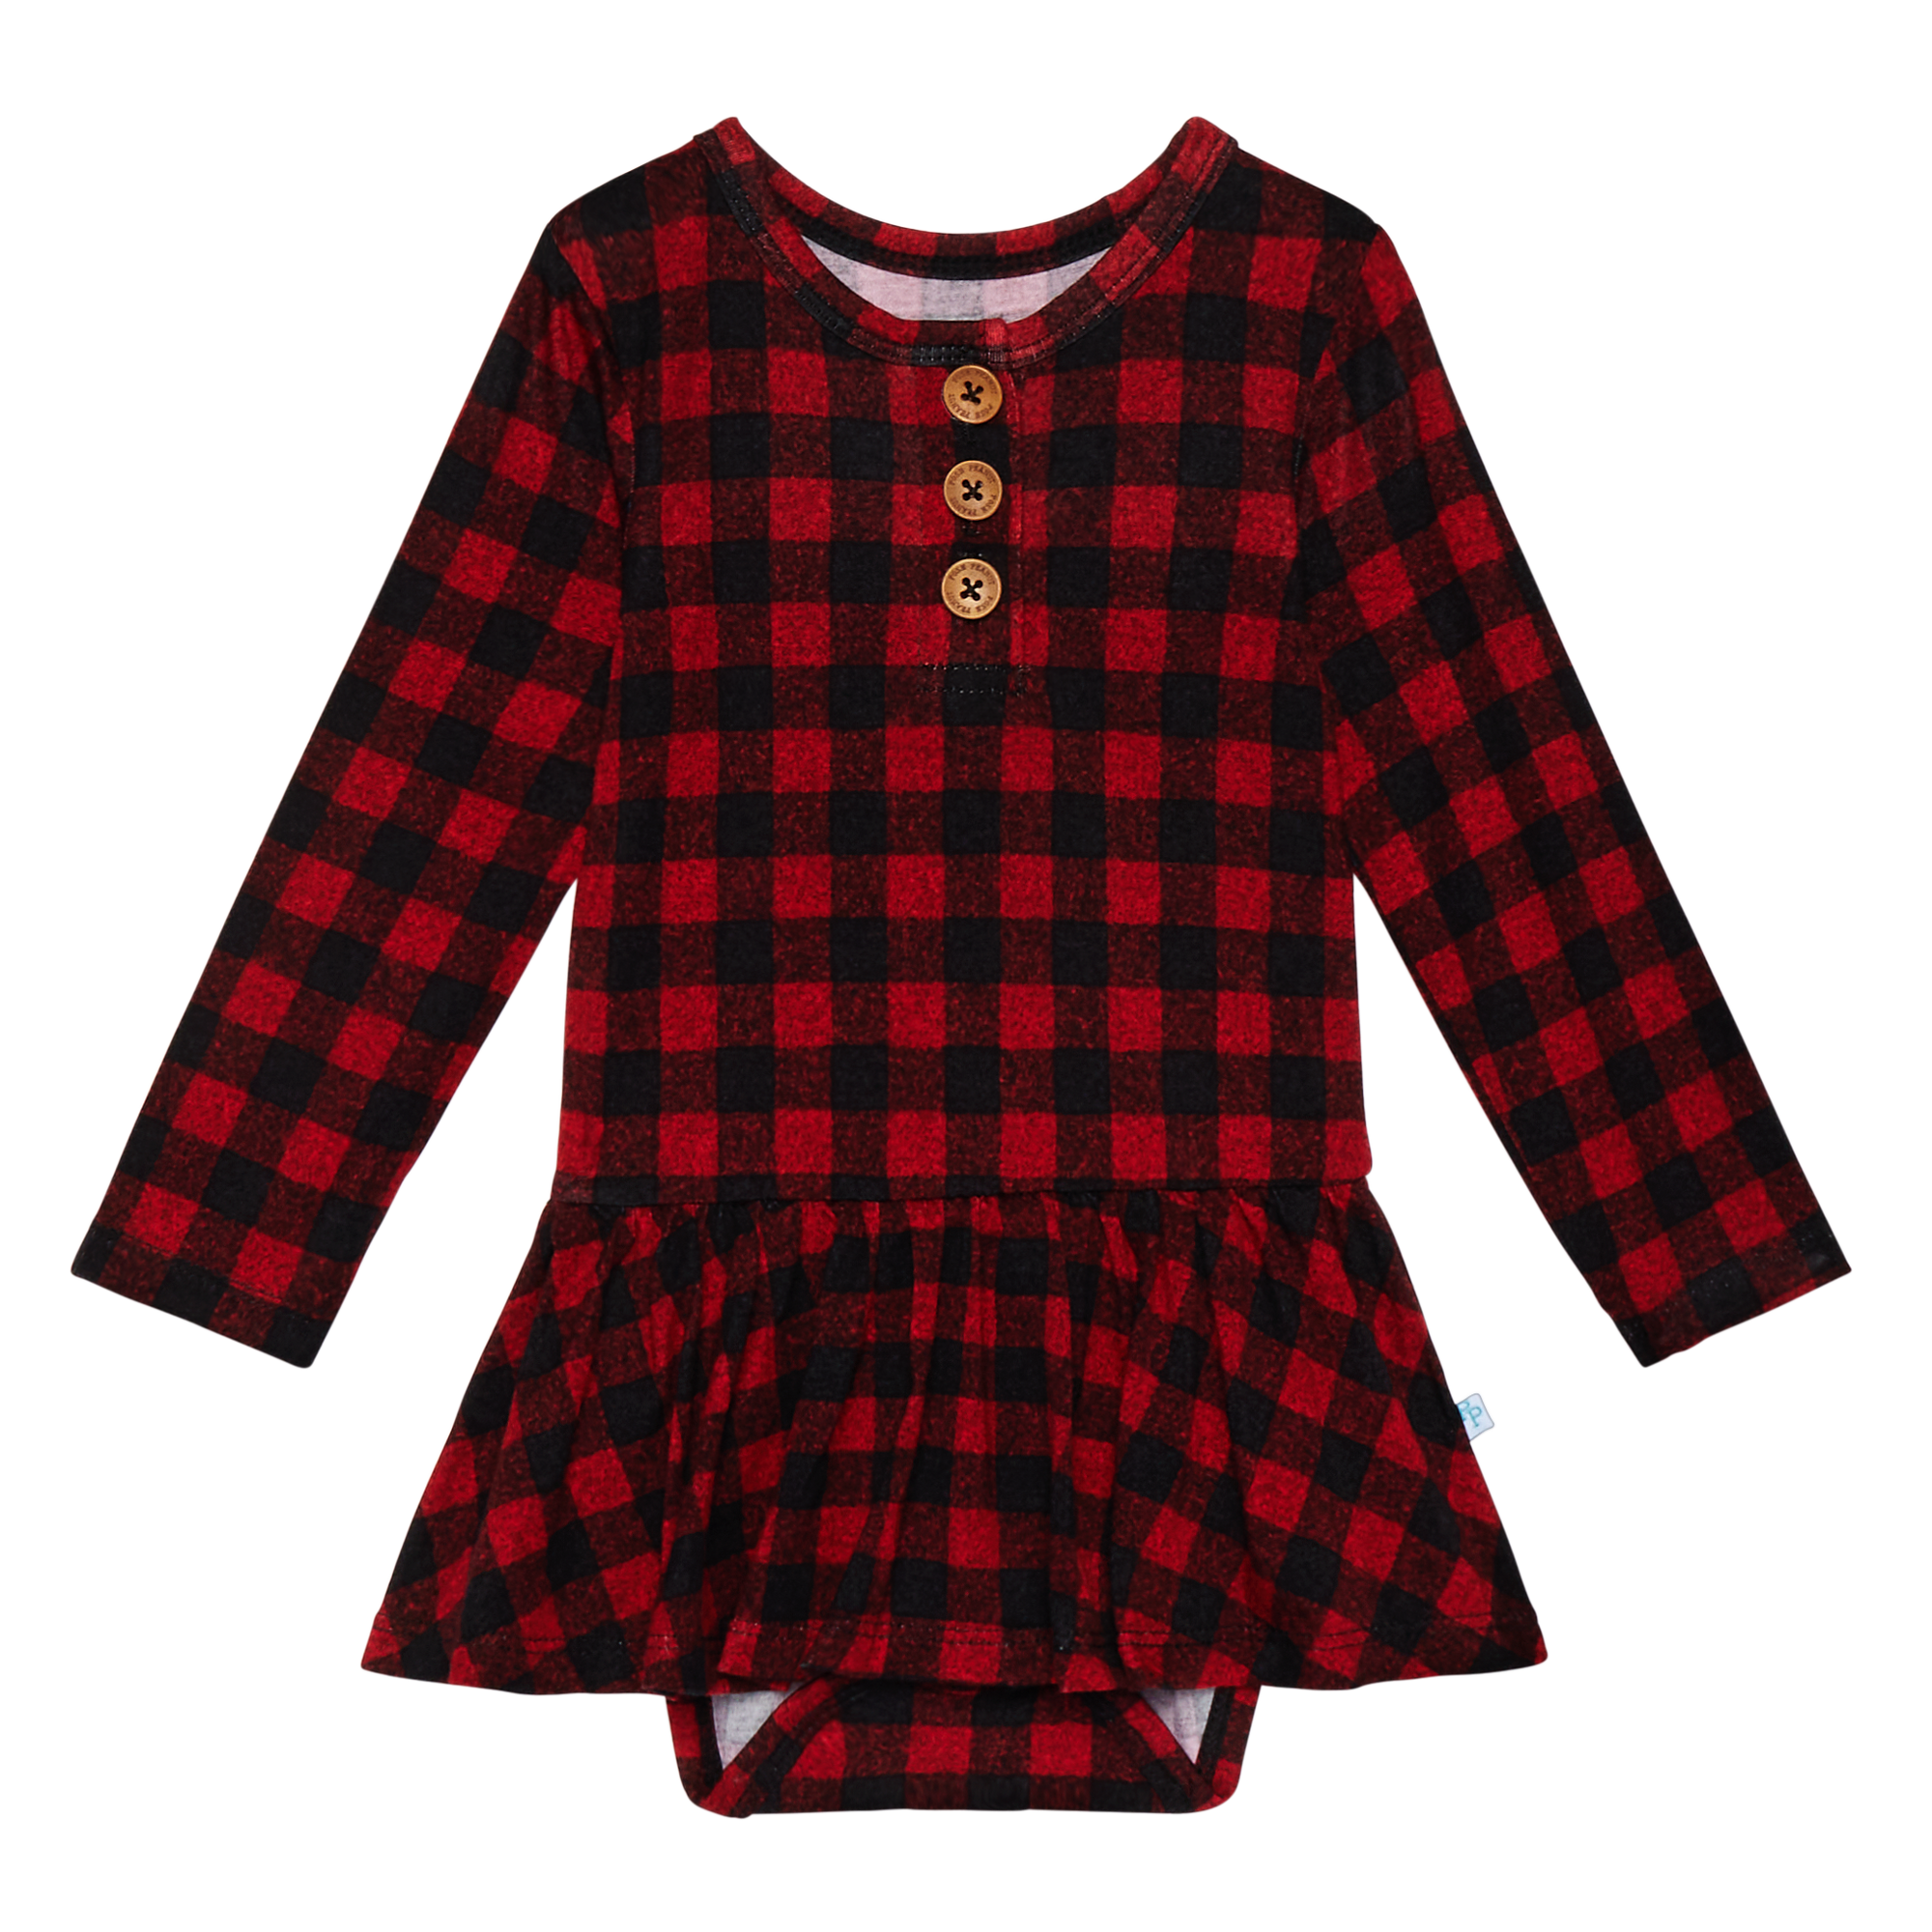 Posh Peanut Grayson Plaid Long Sleeve Henley with Twirl Skirt Bodysuit